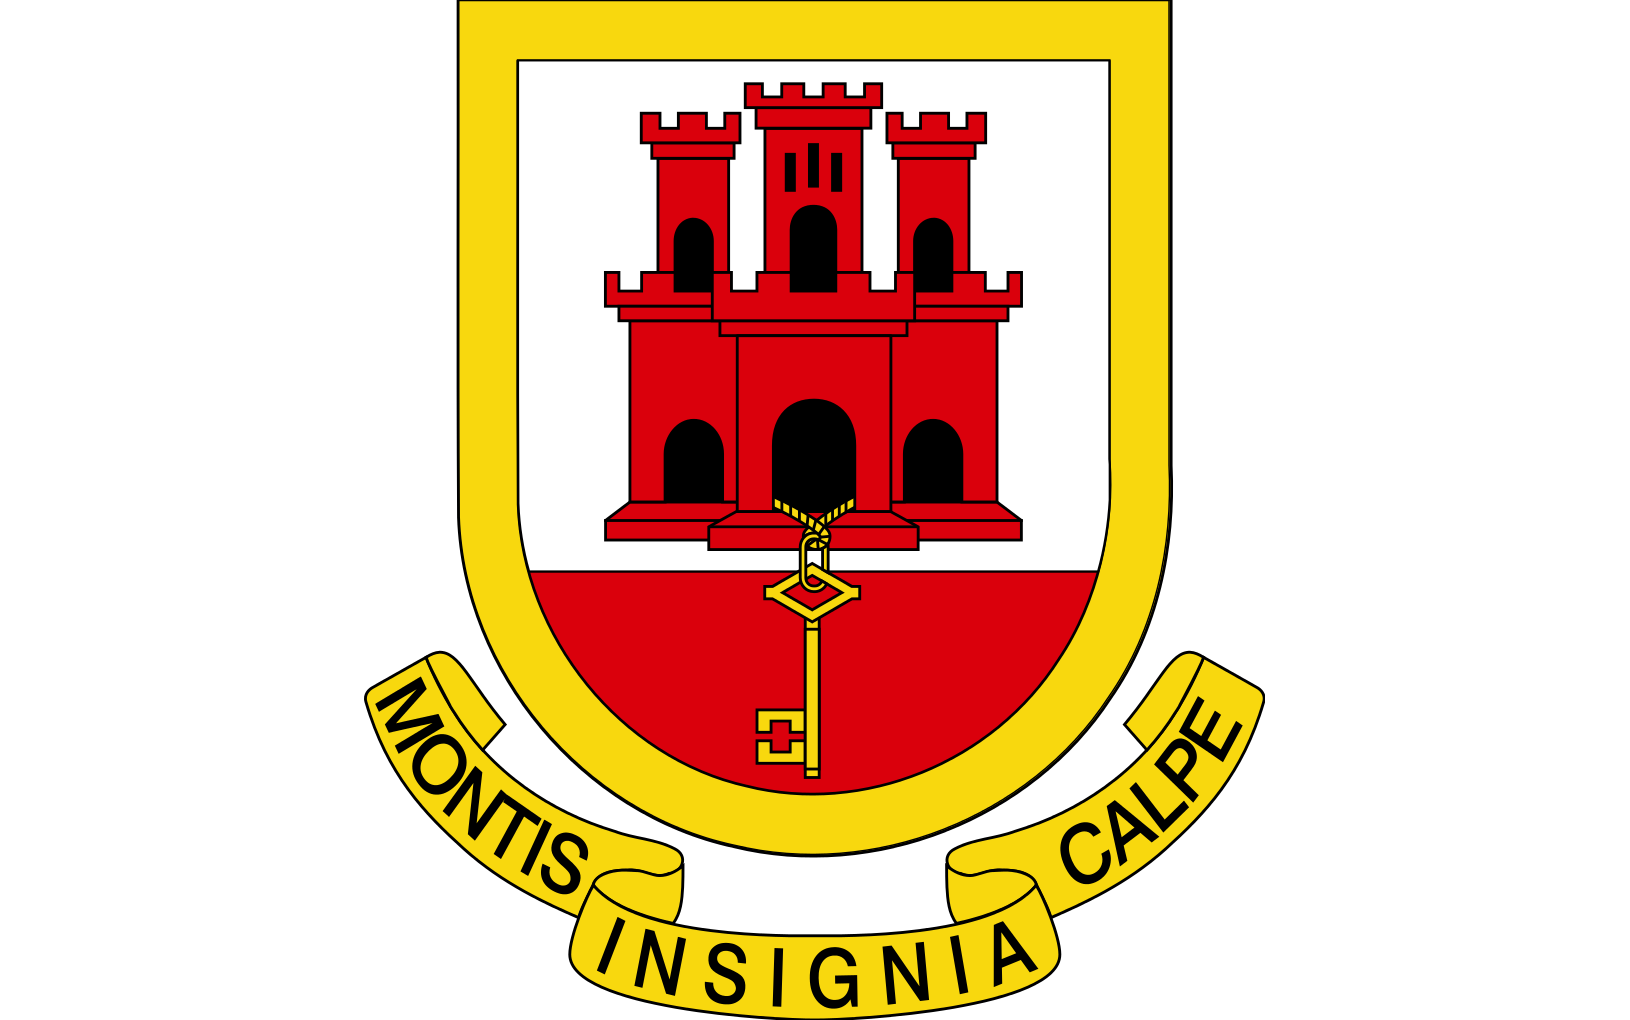 montis insignia calpe - Badge of the Rock of Gibraltar